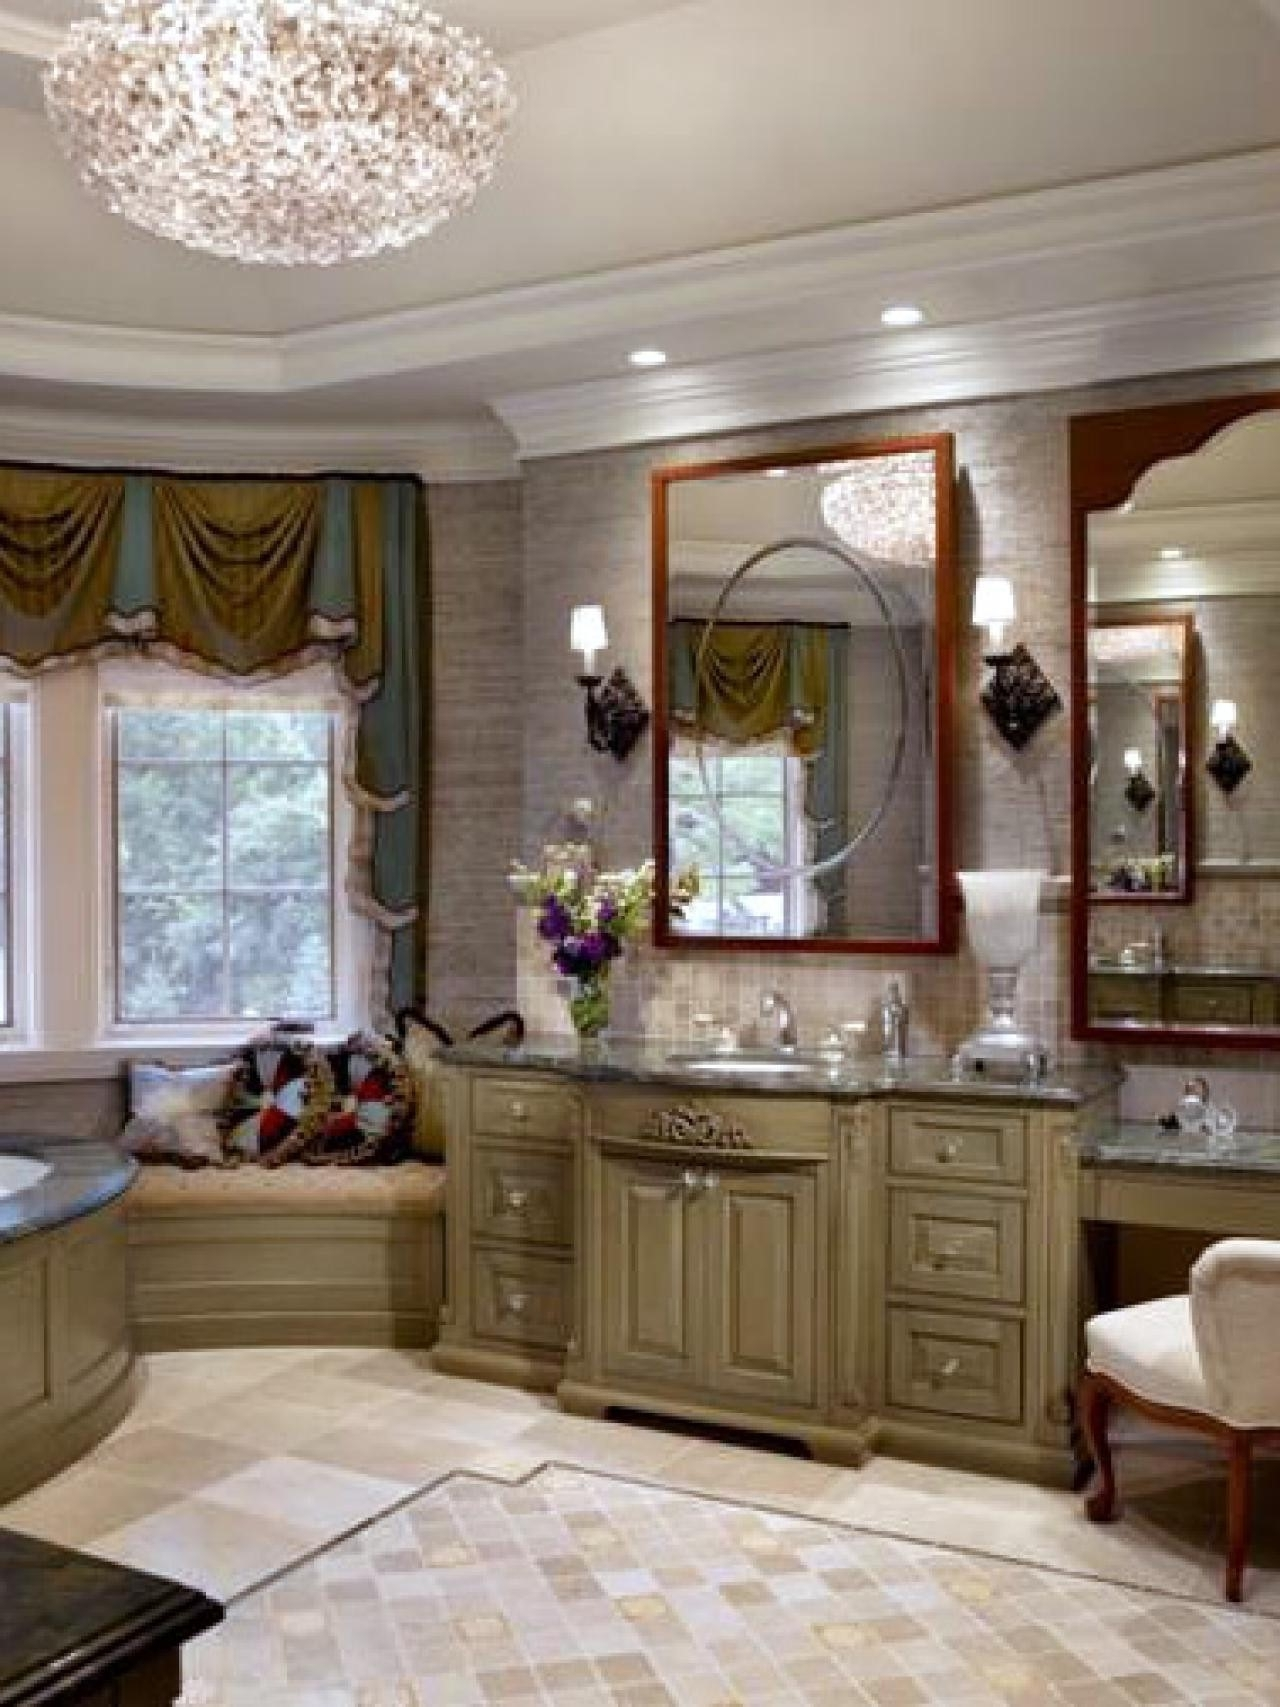 Bathroom Lighting With Matching Chandeliers Intended For Most Recently Released Incredible Chandelier Bathroom Lighting Lighting Bathroom Lighting (View 10 of 20)